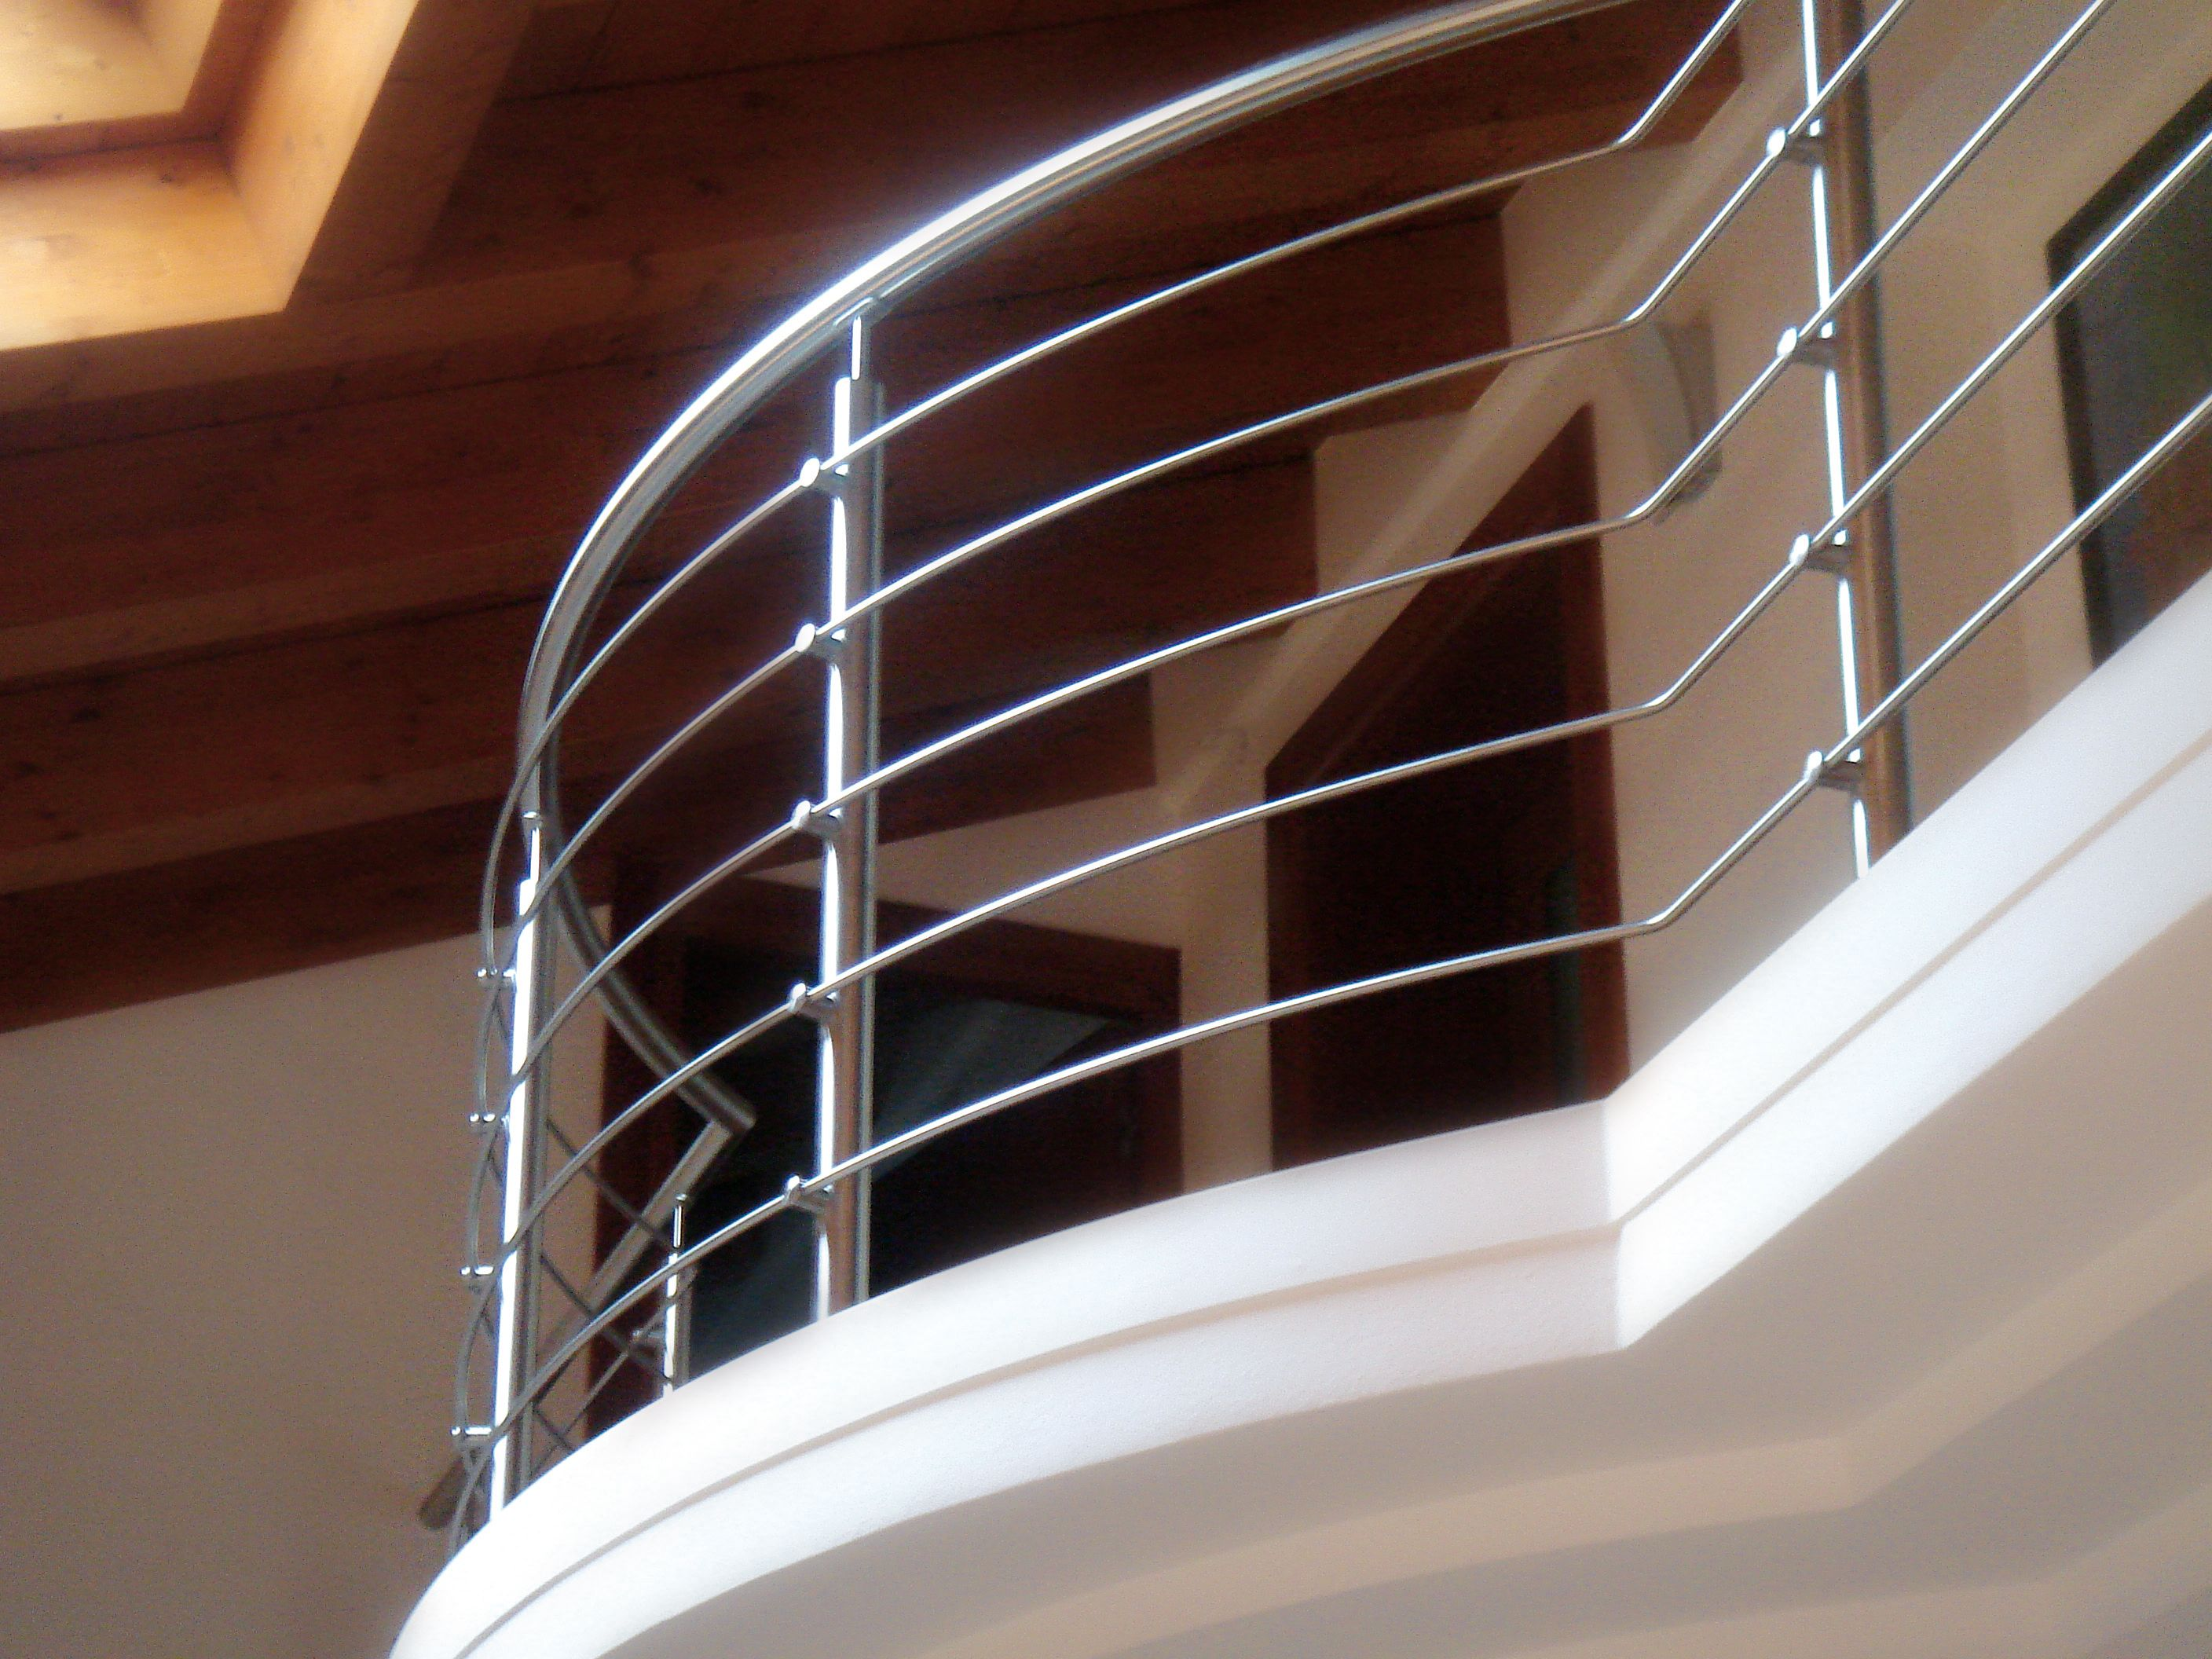 Best Our Stainless Round Bar Makes An Excellent Balcony Rail 400 x 300